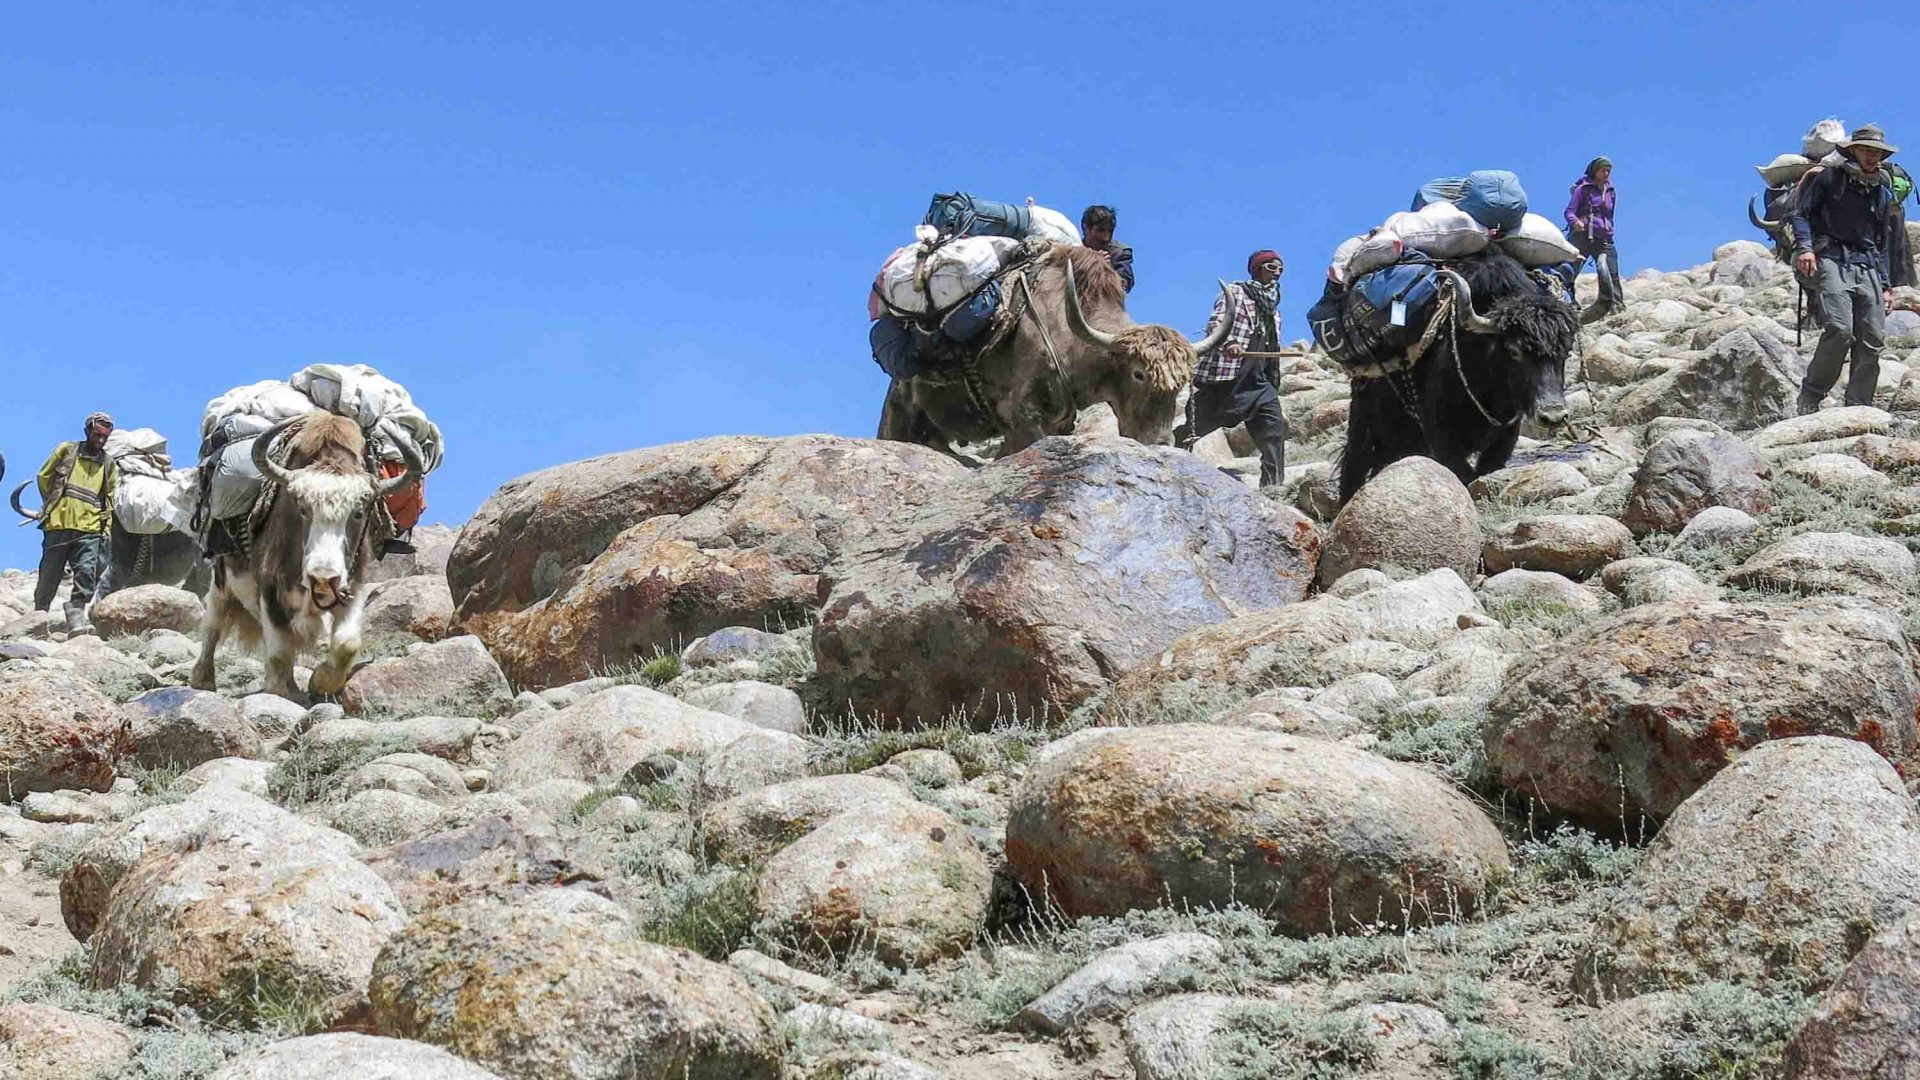 Hikers climb a steep mountain, with the help of local yaks.